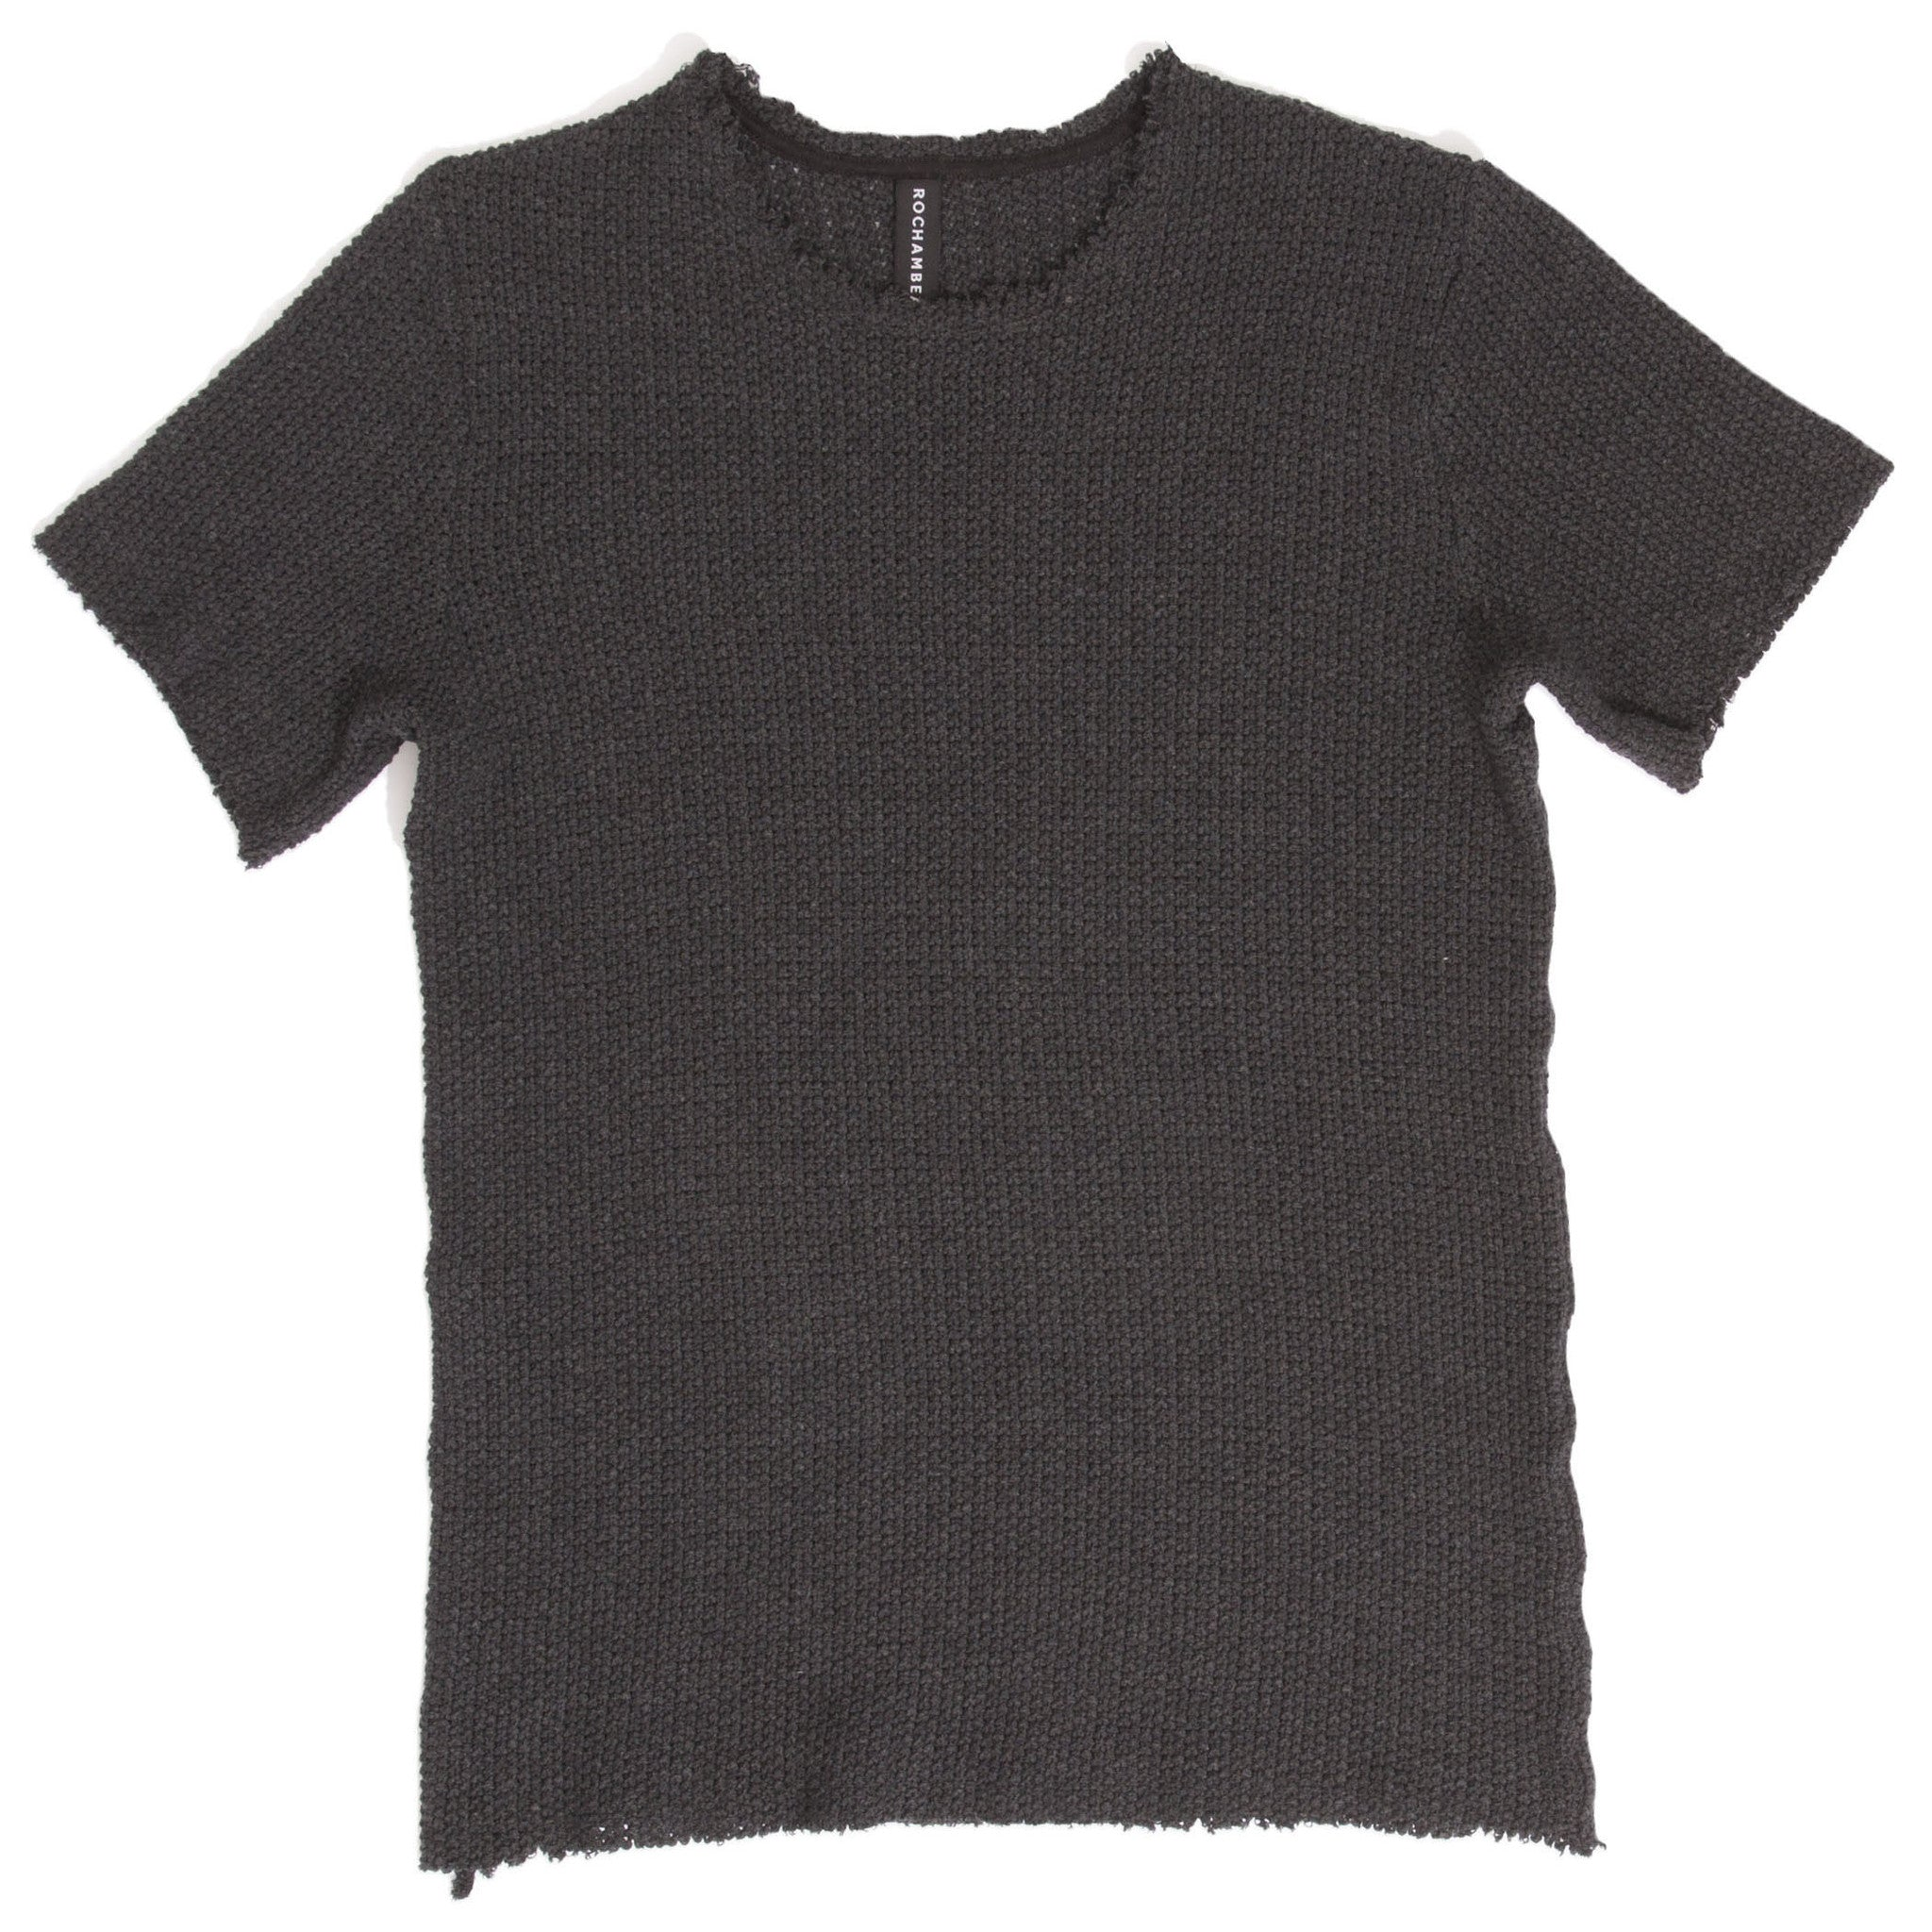 Seed Stitch Knit T-Shirt